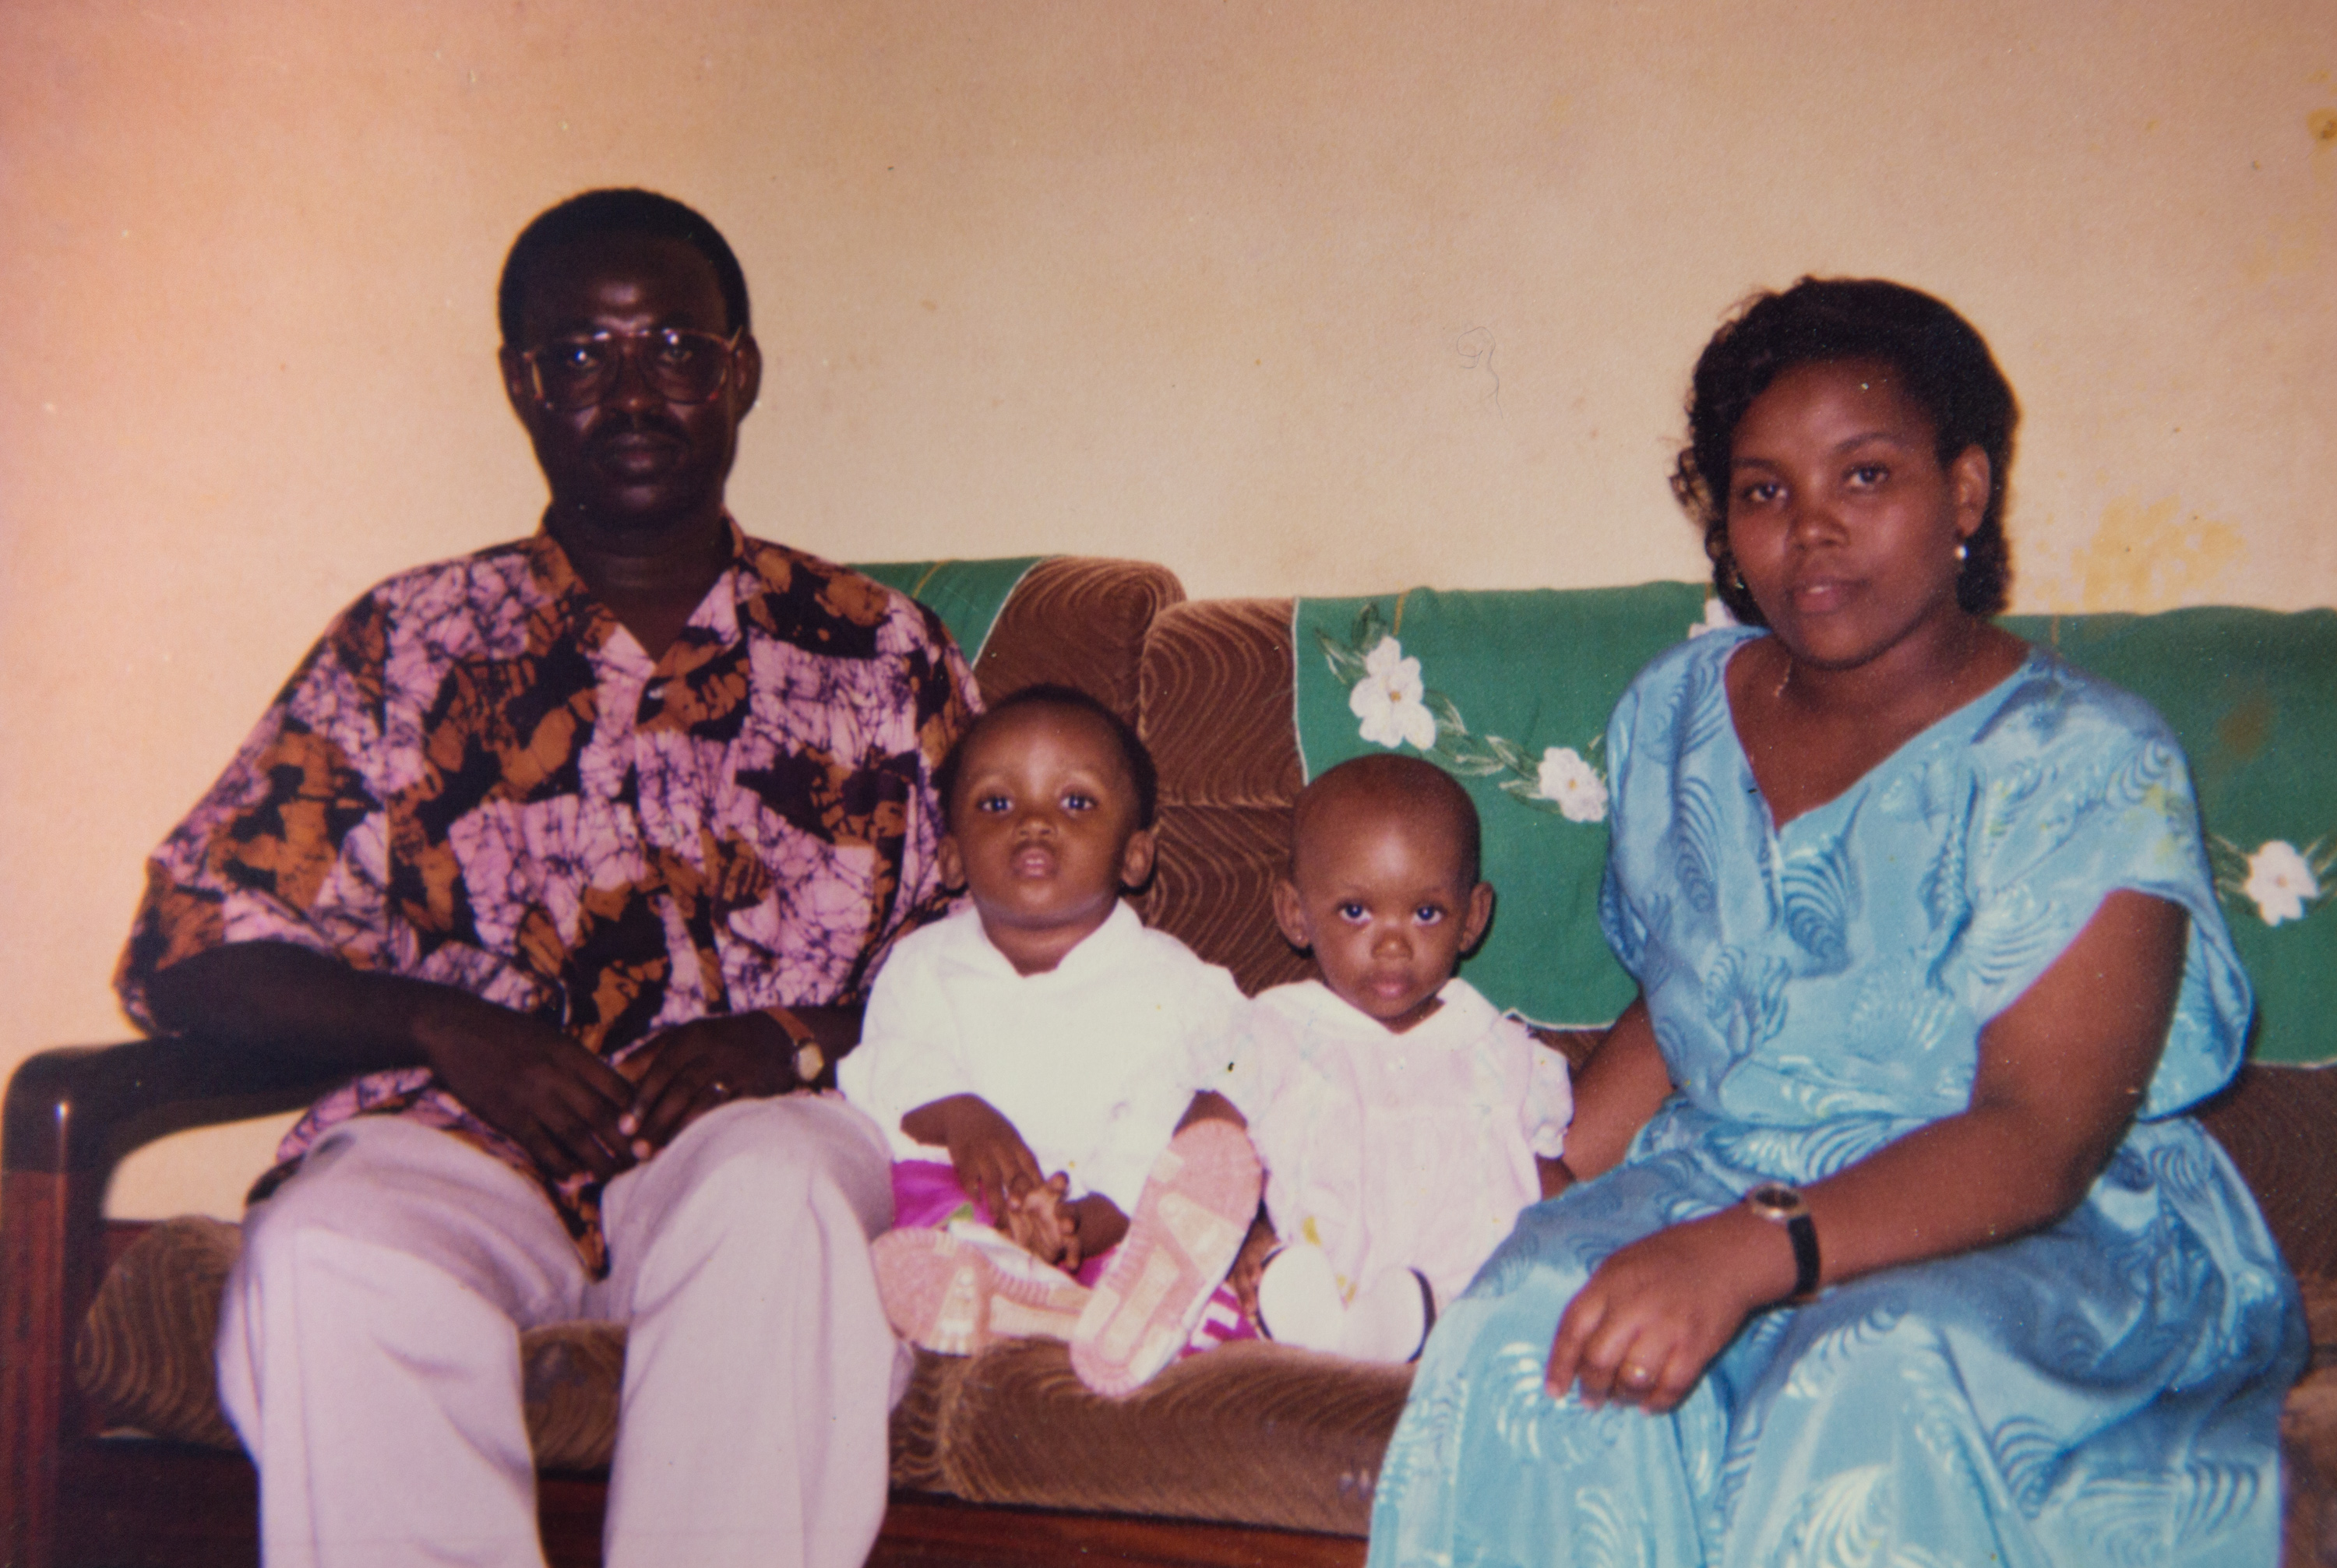 Marie Ntawizera, her husband and her two daughters sitting on a couch.